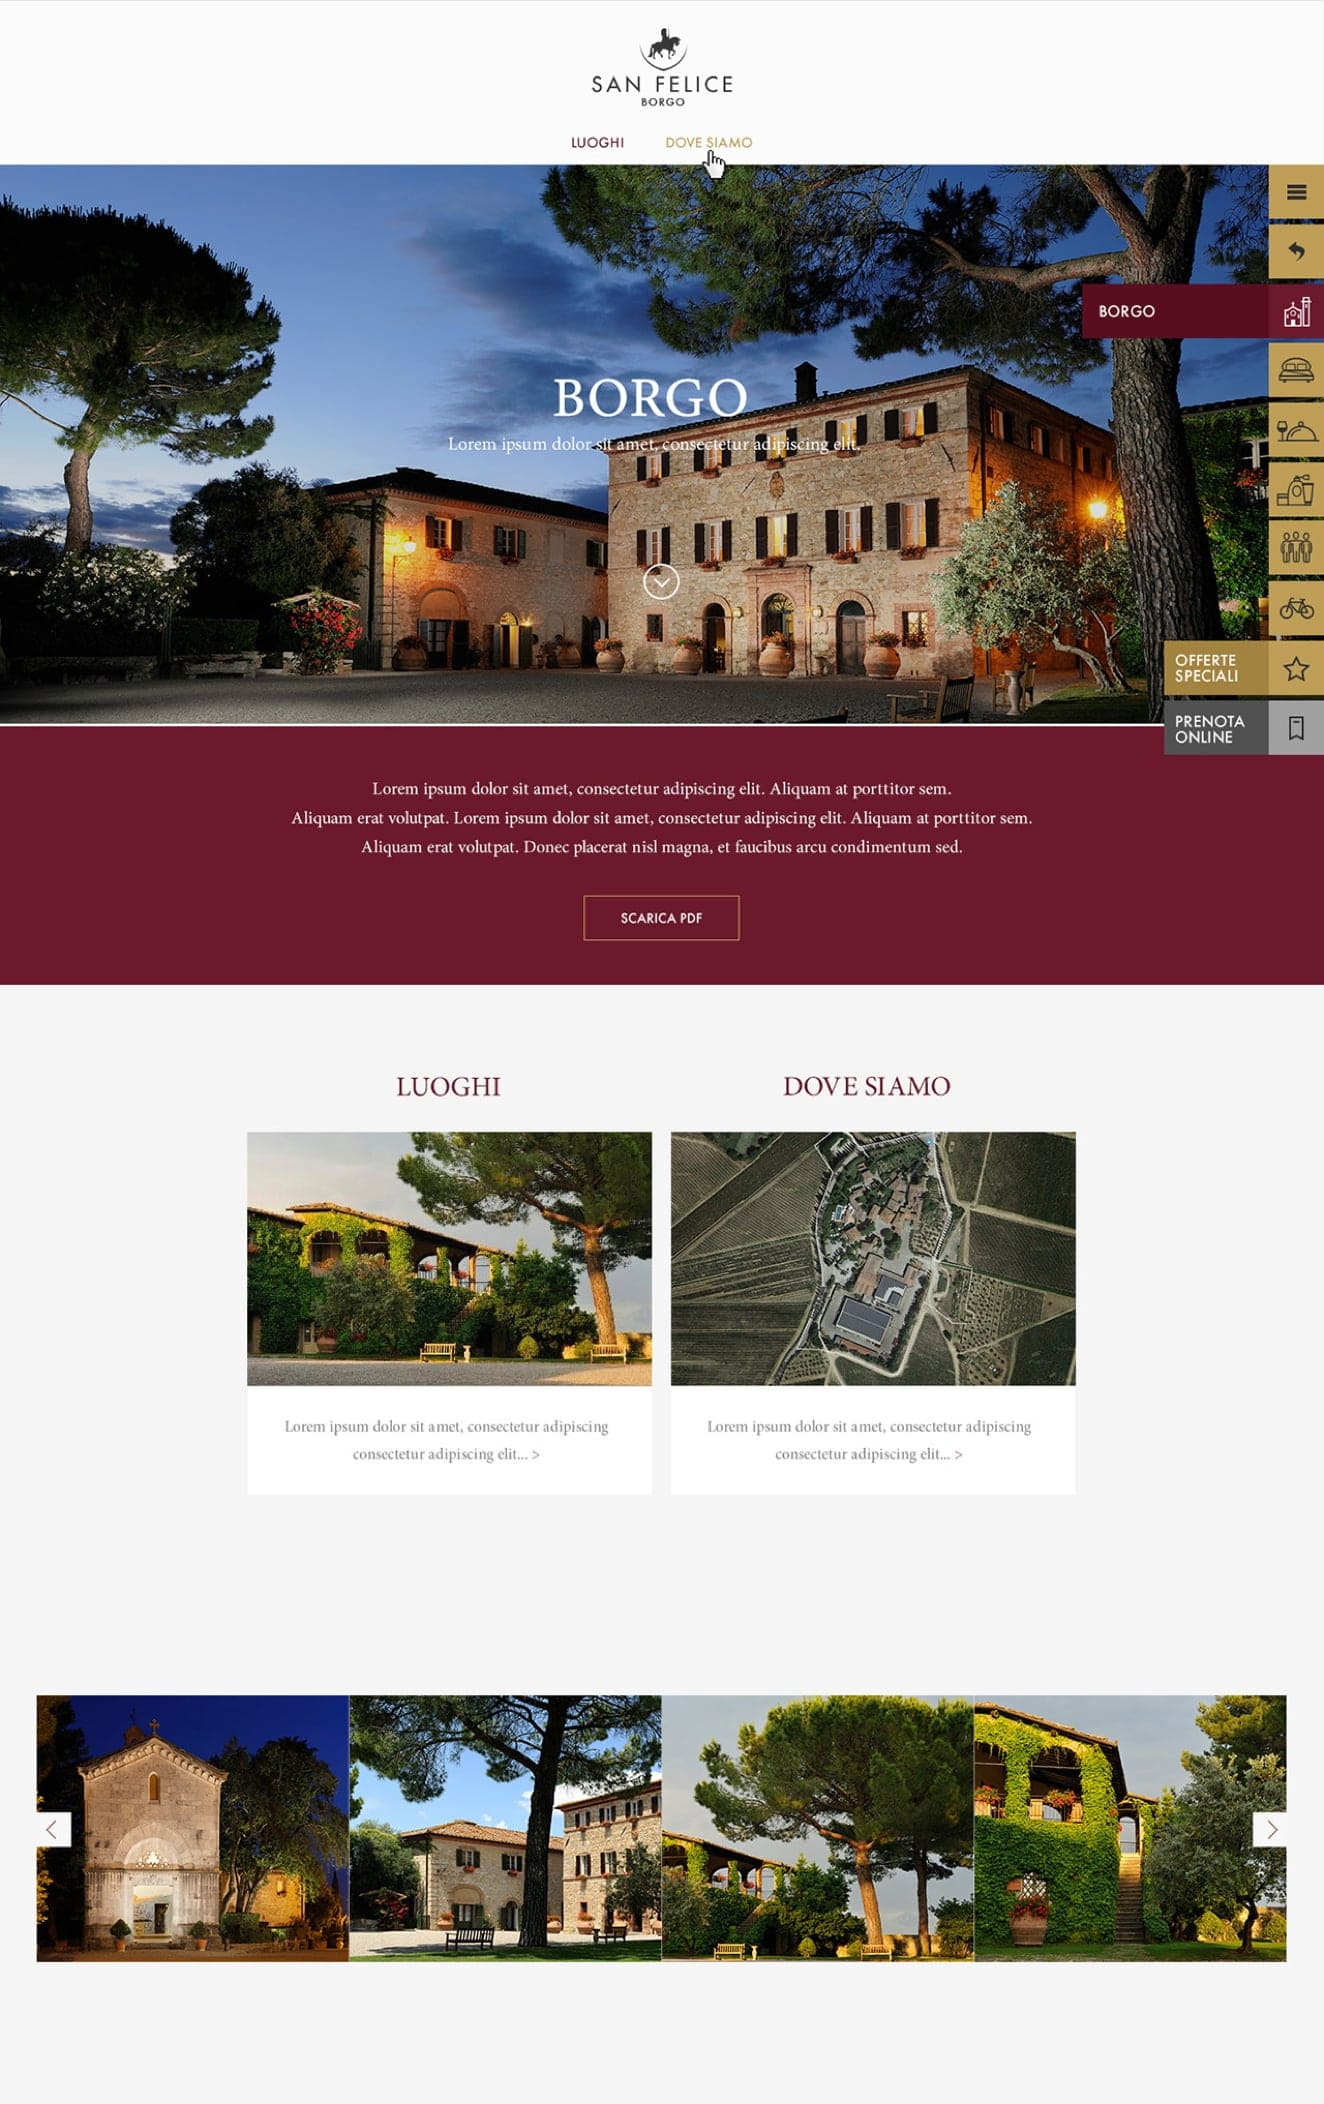 Digital strategy for Borgo San Felice Hotel – Web design by Luther Dsgn agency